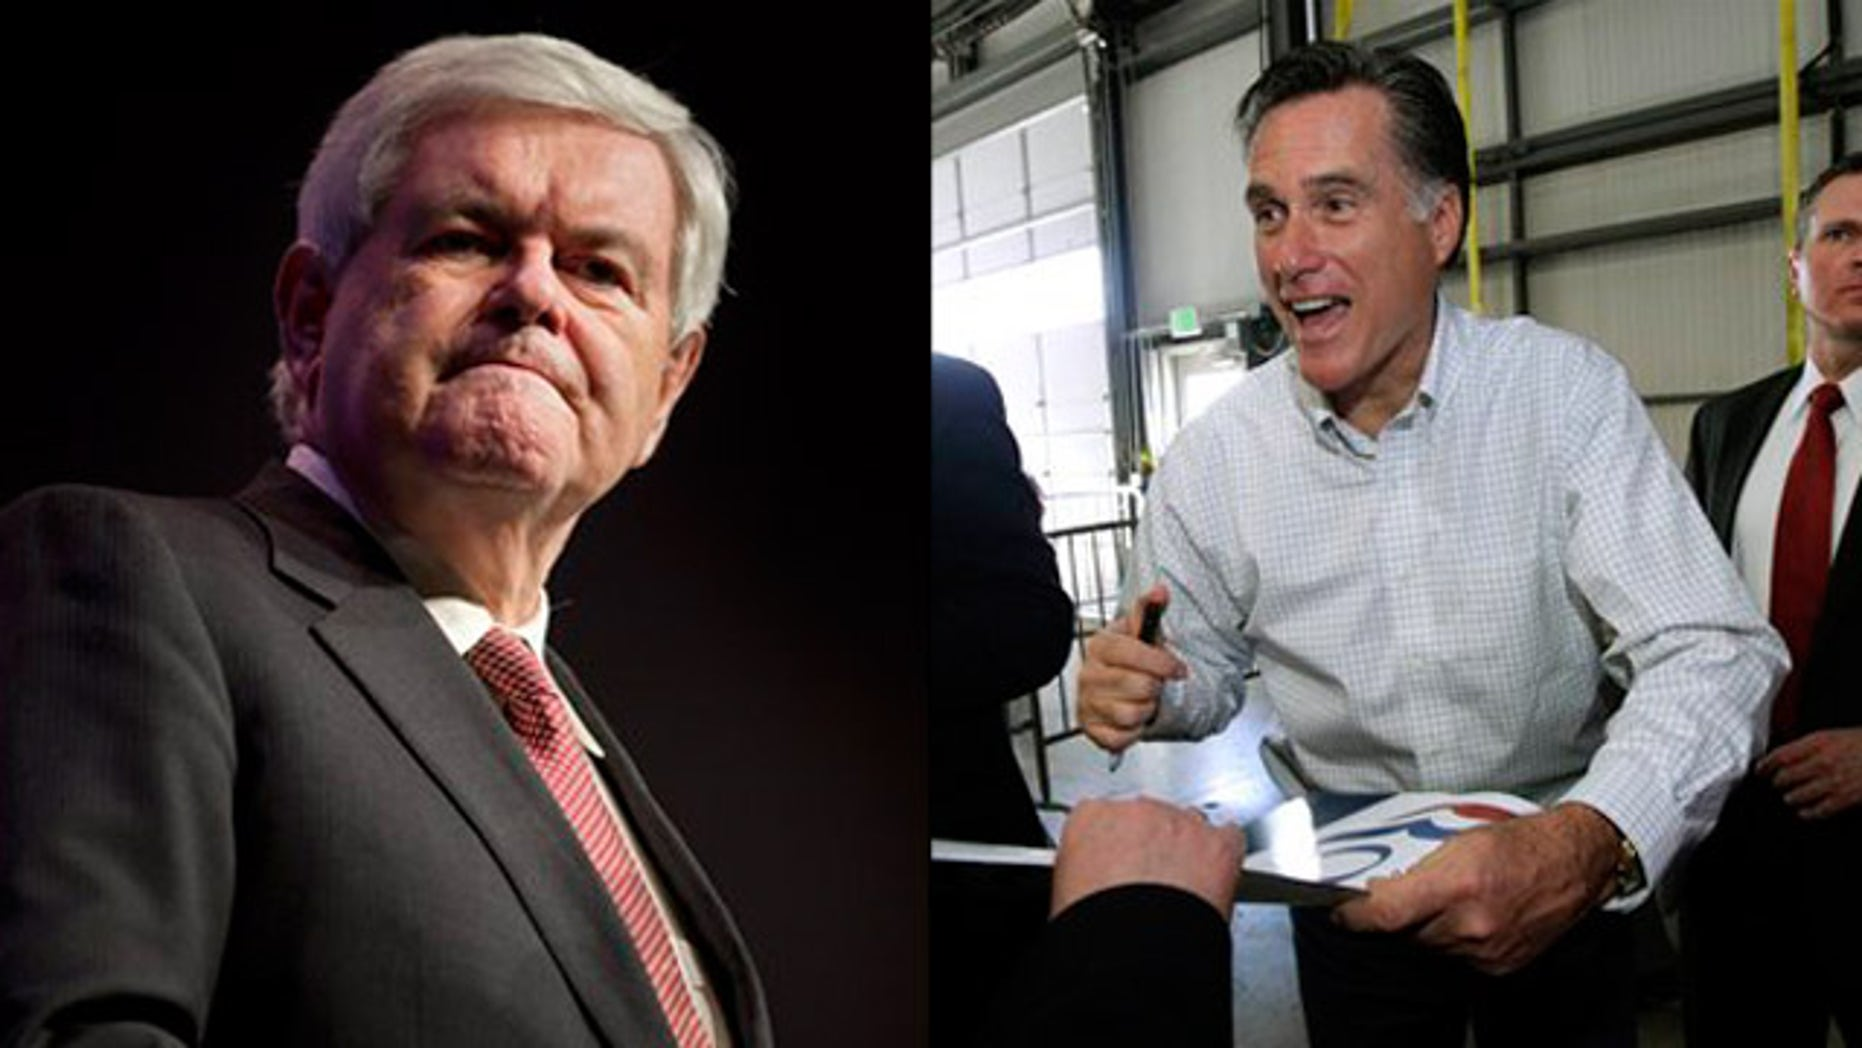 Feb. 3, 2012: Newt Gingrich and Mitt Romney campaign in Nevada.